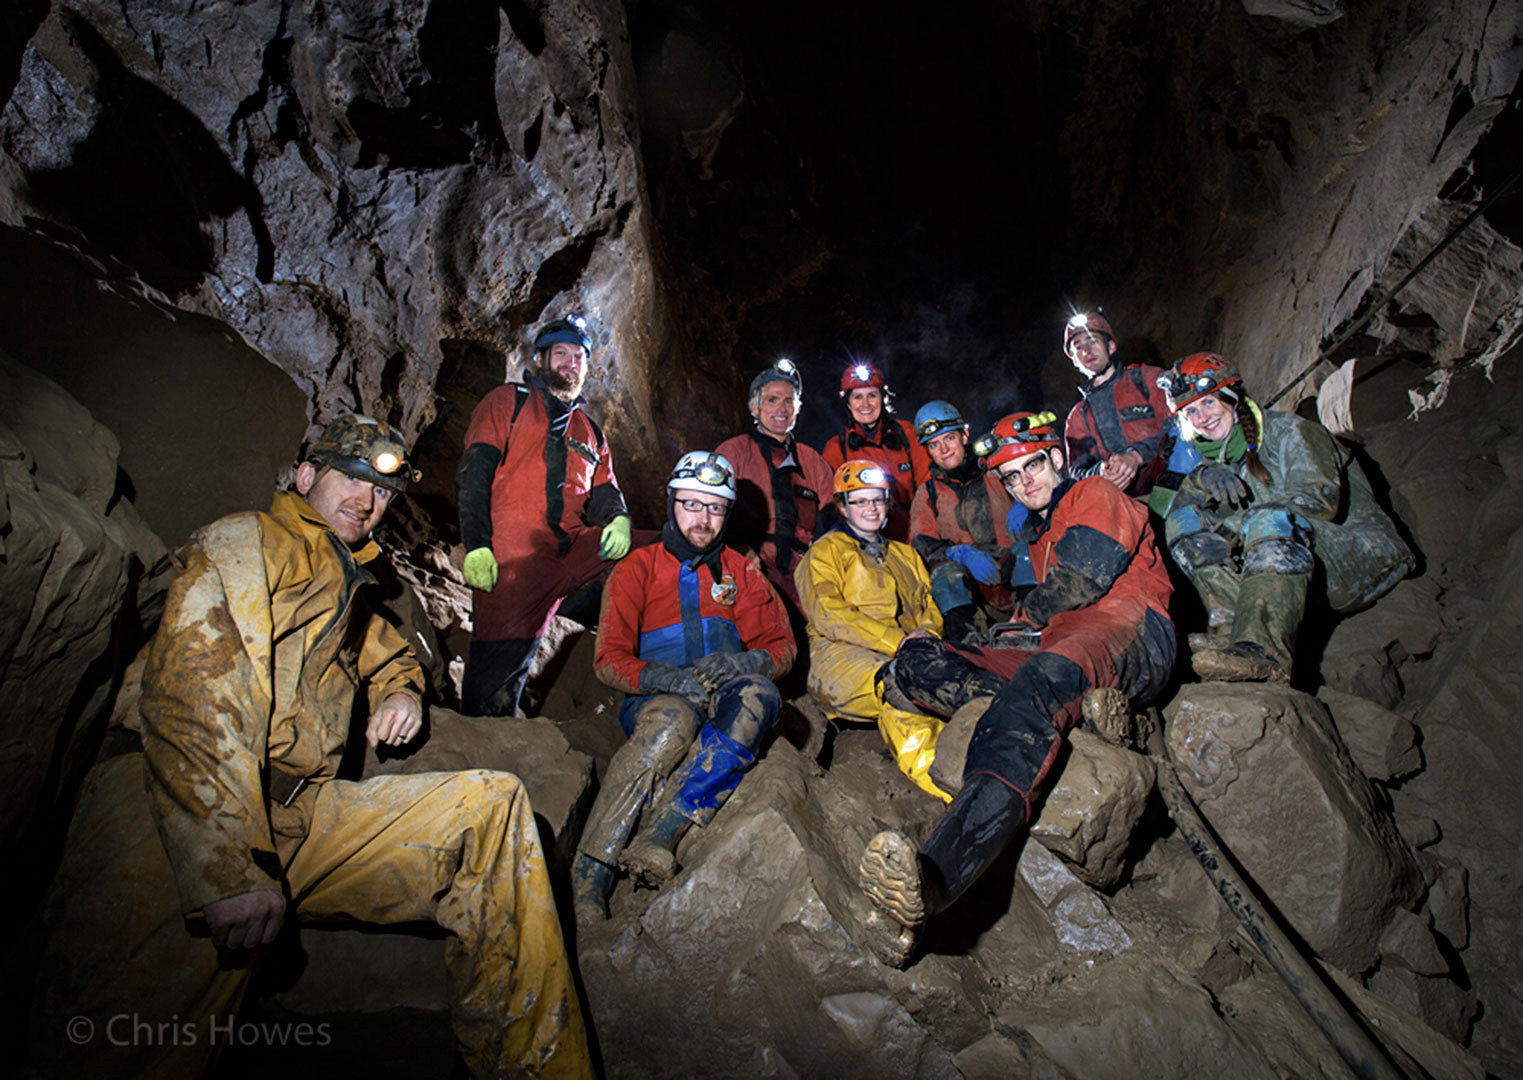 Ailwee Cave group photo, Co. Clare, Ireland